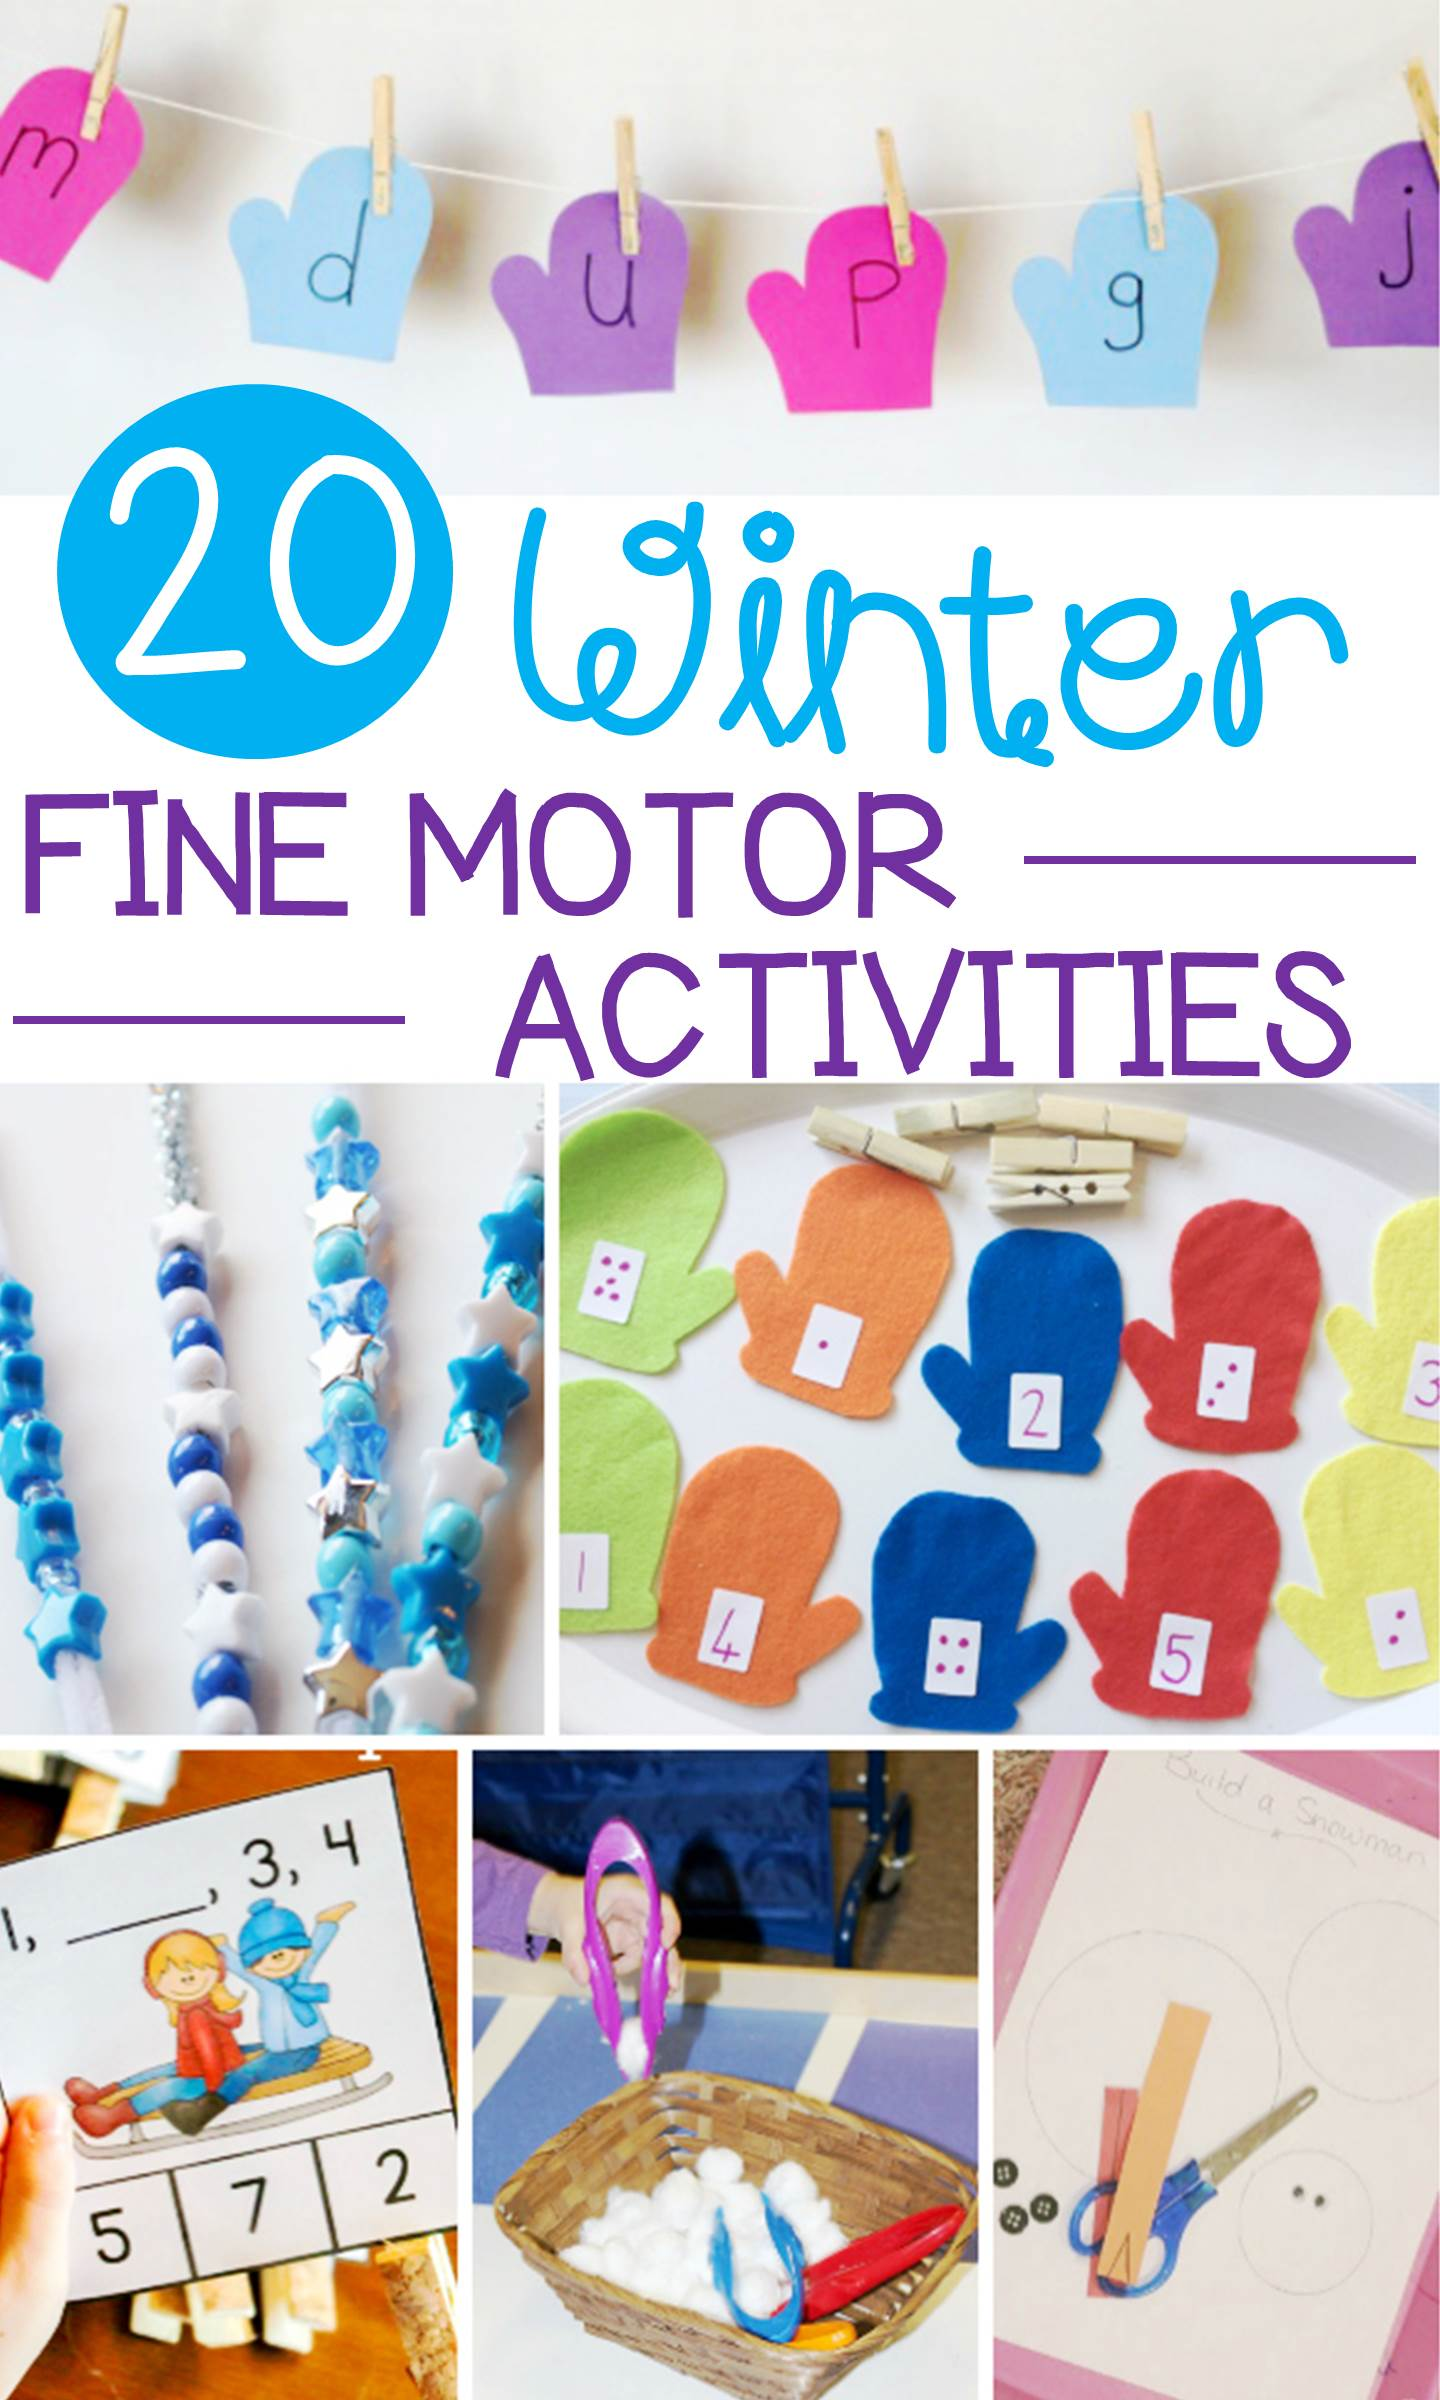 These winter fine motor activities are so fun for preschoolers and kindergarteners to to develop pre-writing and early writing skills!